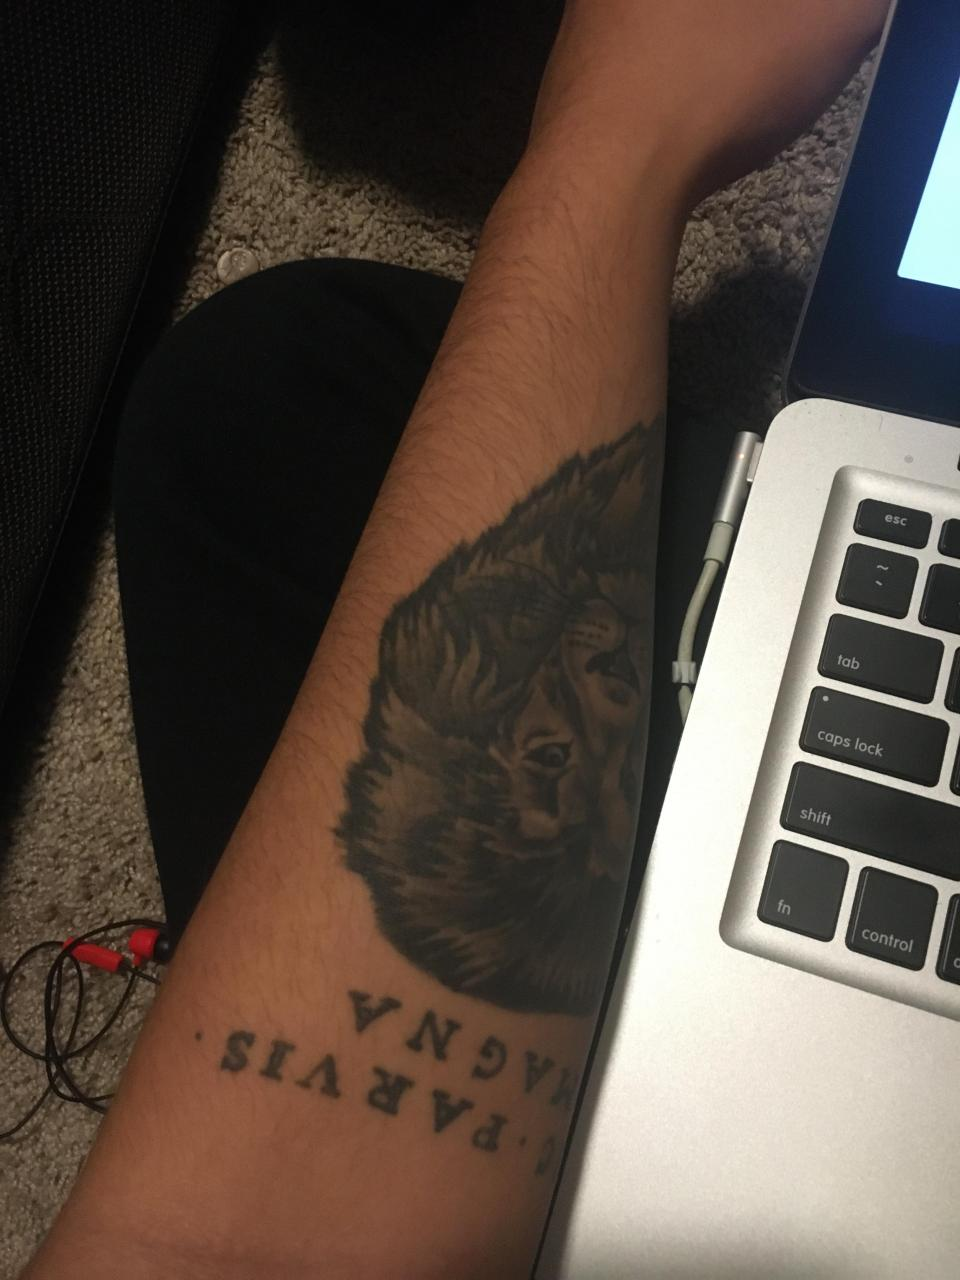 Looking to add another piece on the back of my forearm. Any ideas to complement the lion??